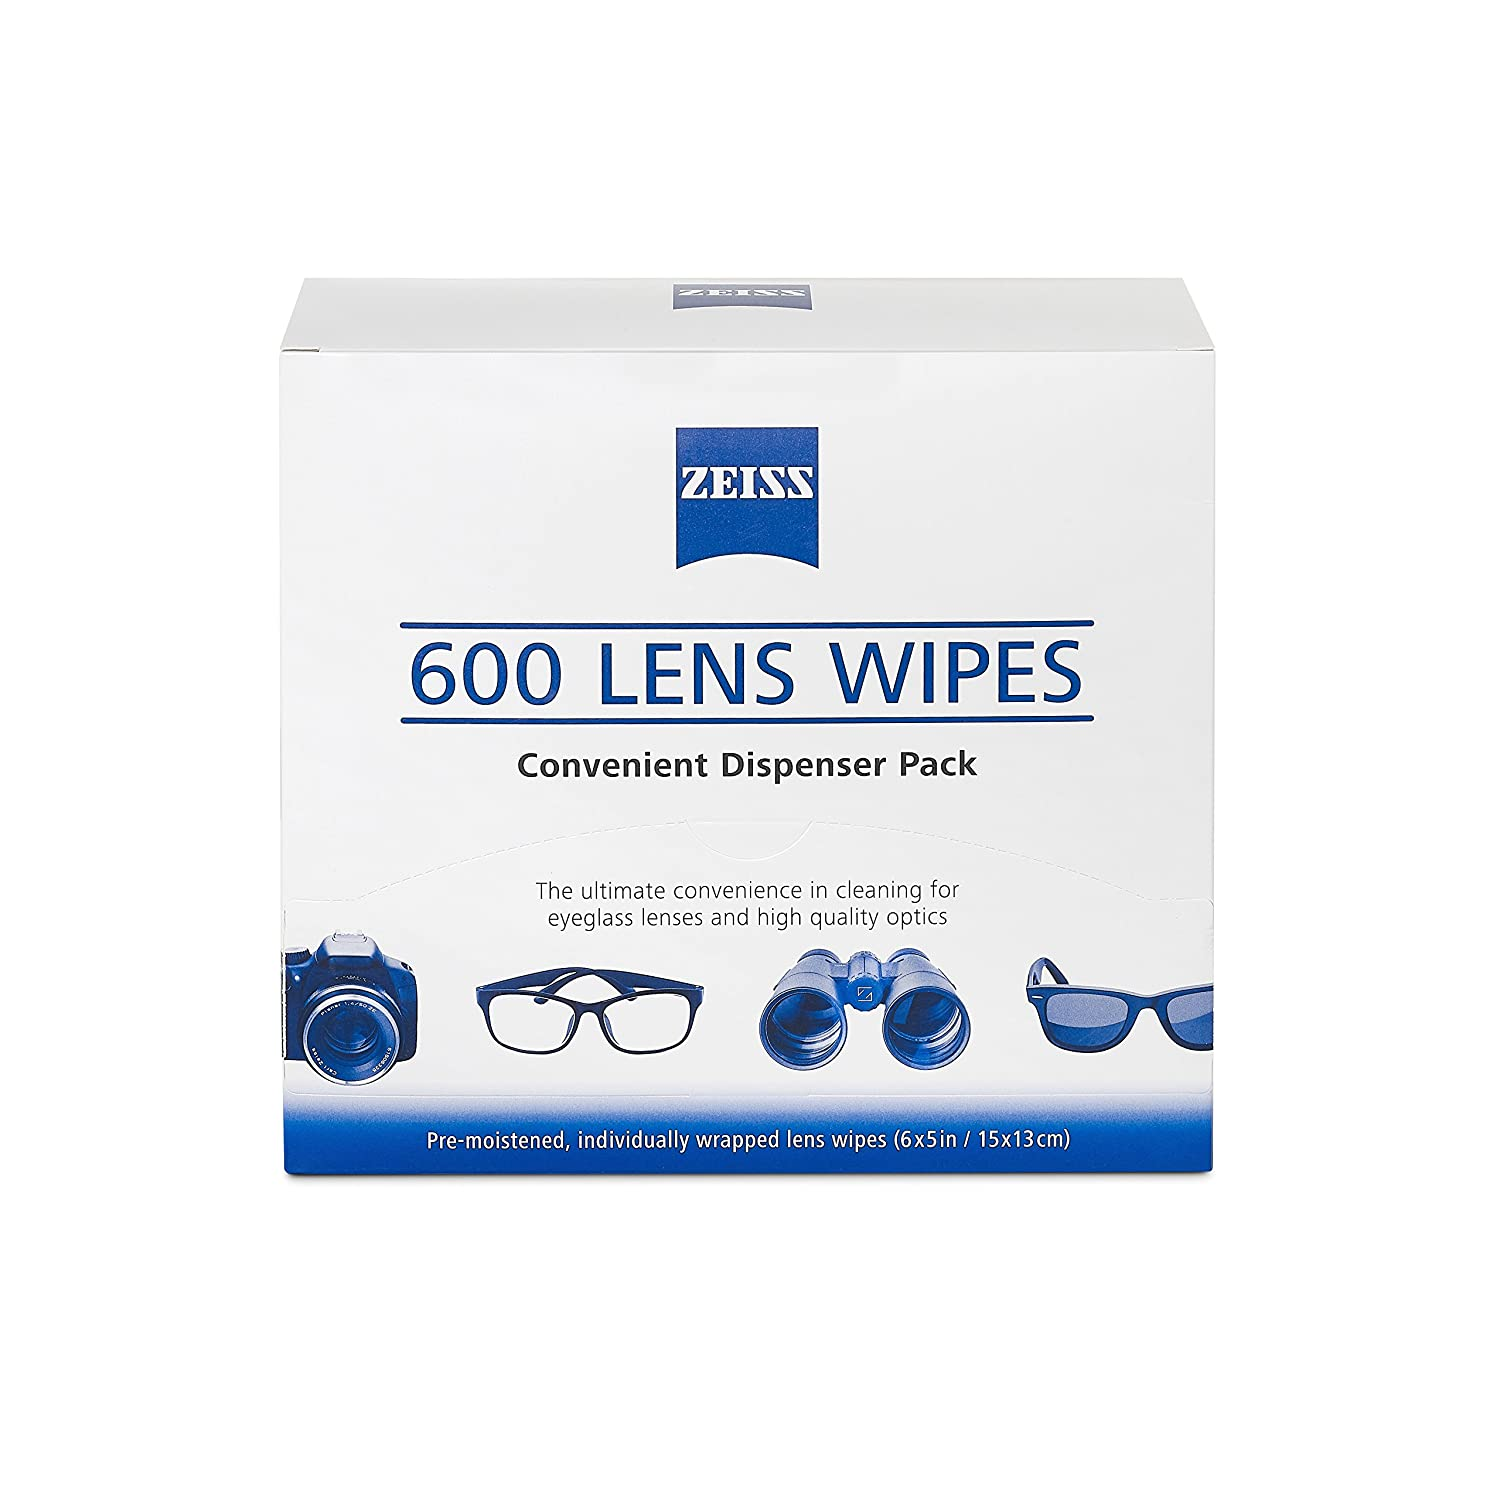 53a49325cb3 Amazon.com  ZEISS Lens Wipes - 600 Pre-Moistened Eyeglass Cleaning Wipes   Health   Personal Care